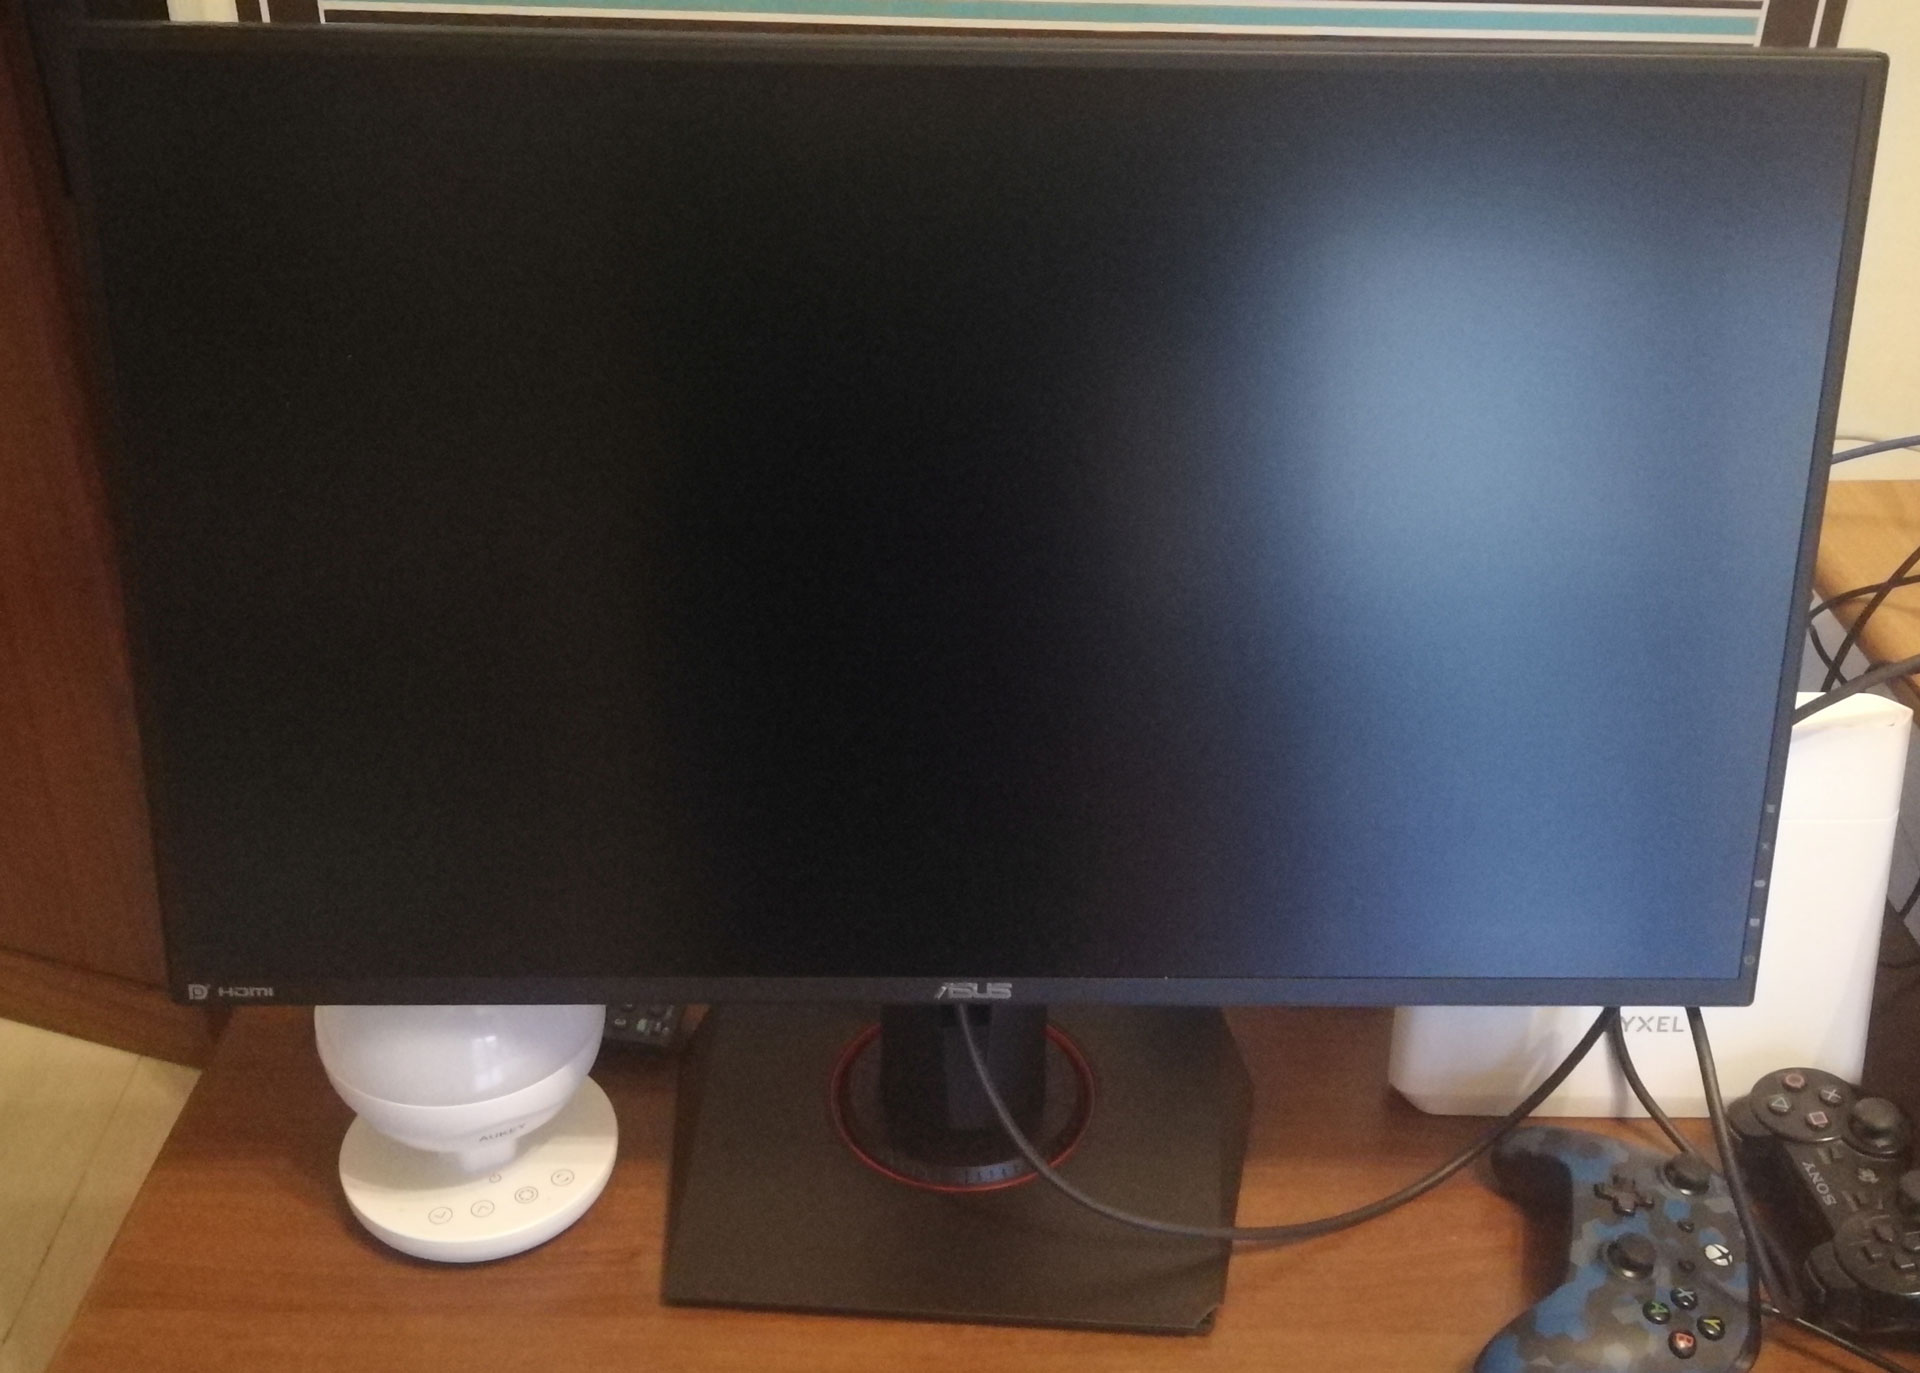 Monitor Asus VG279 | Recensione 2